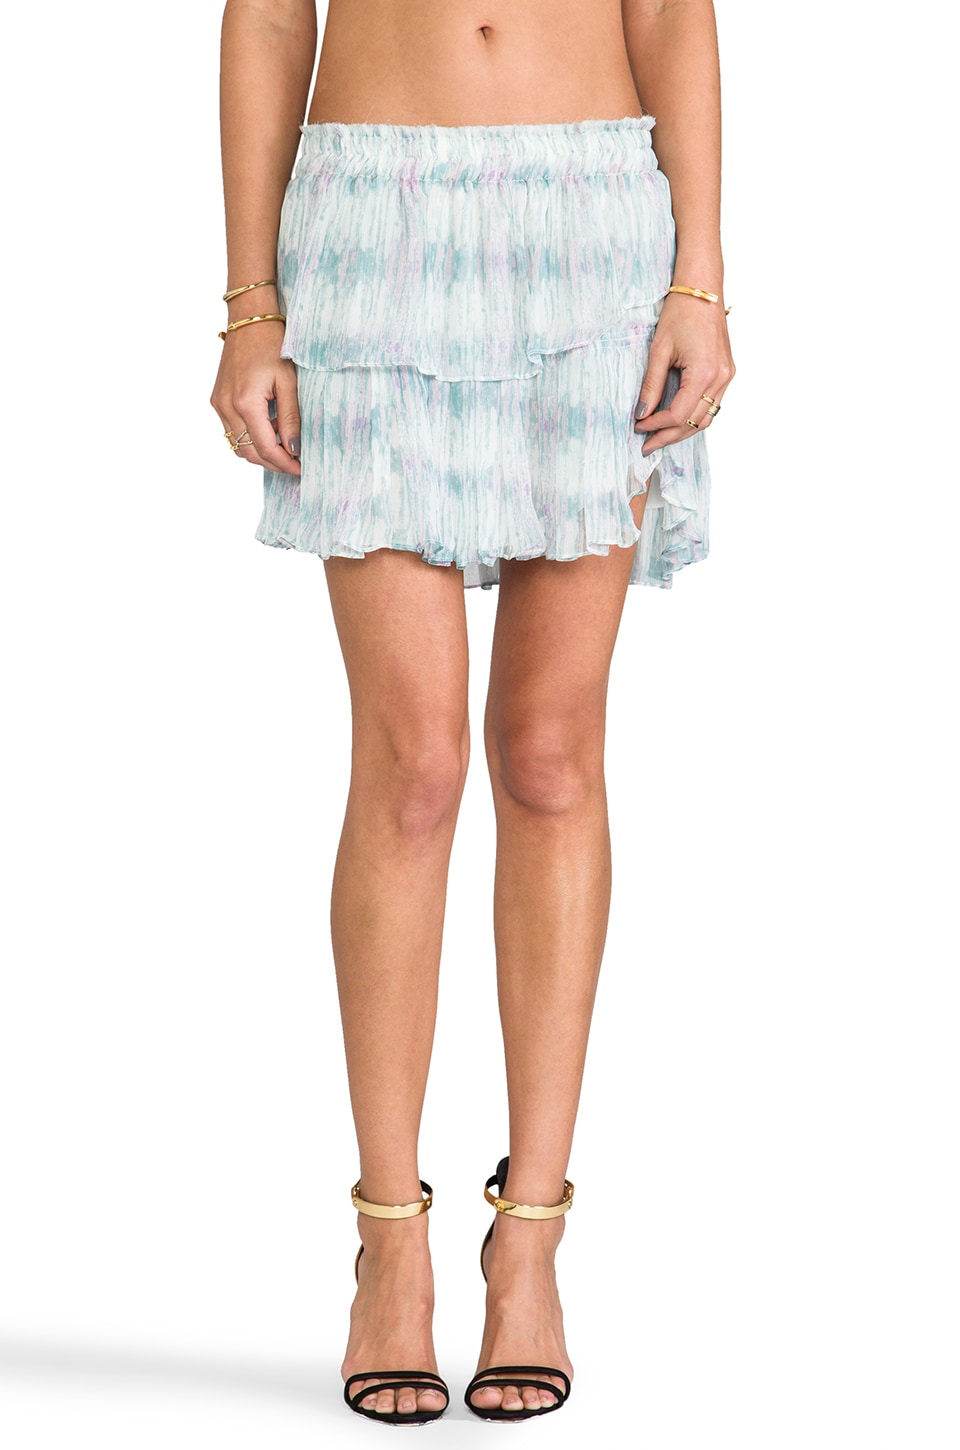 LoveShackFancy Water Color Ikat Ruffle Mini Skirt in Mixed Pastel